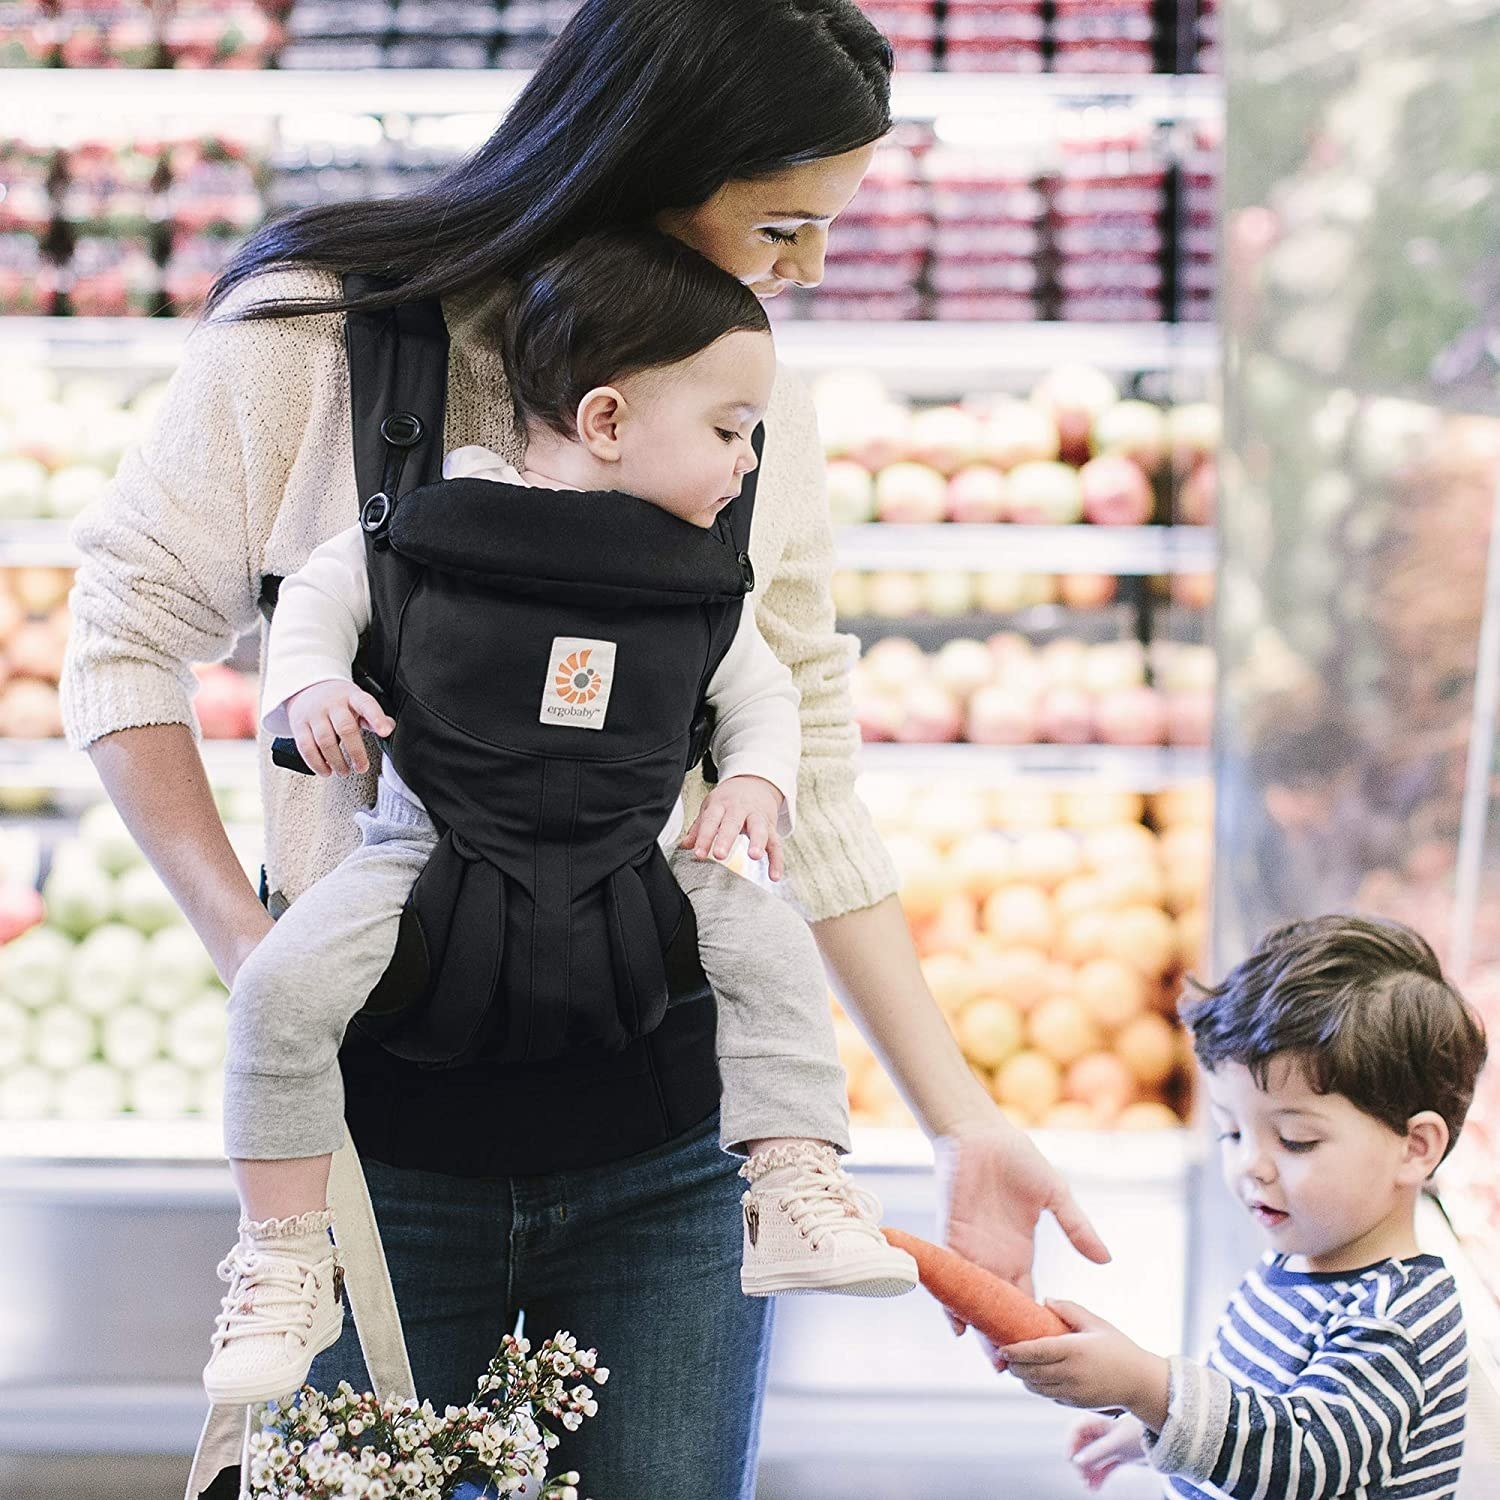 Woman holding a baby in the baby carrier